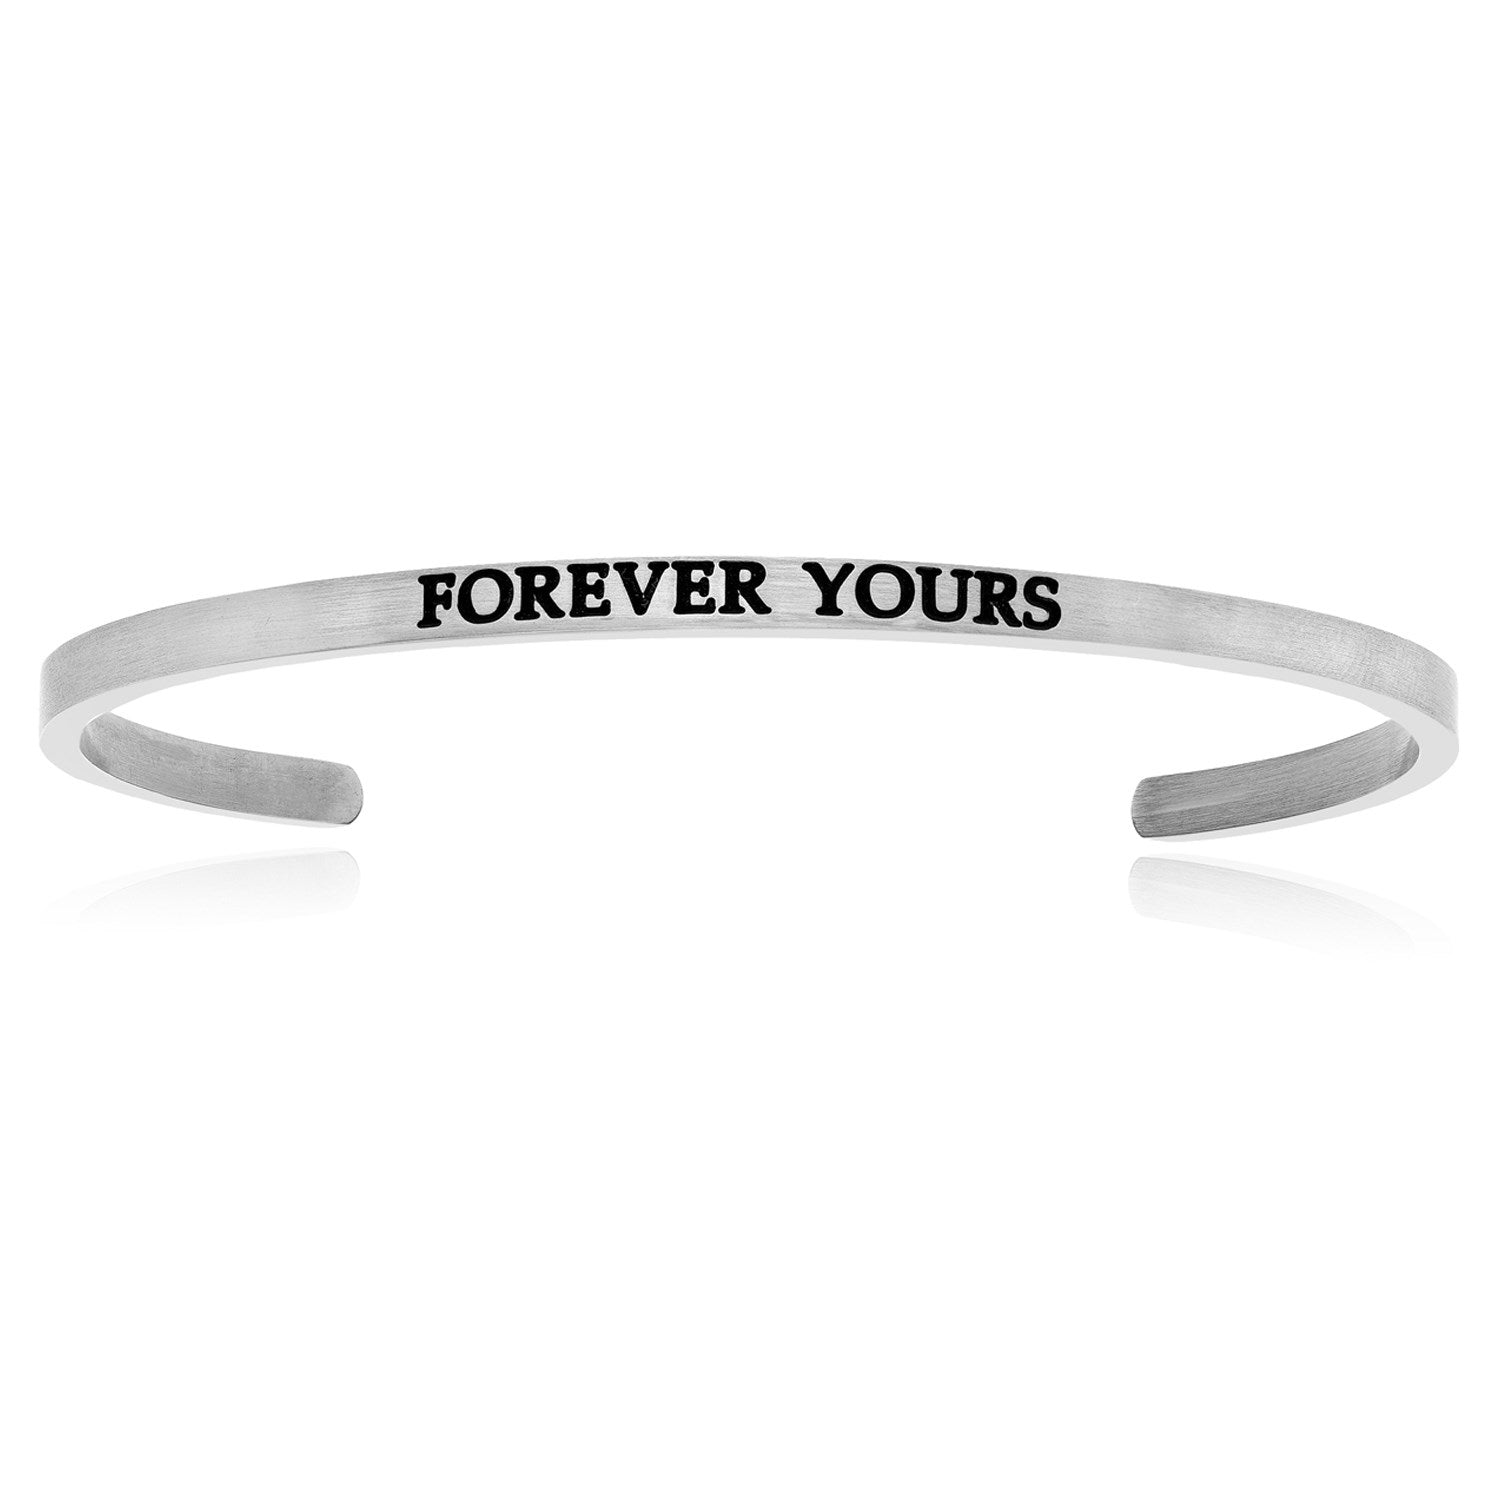 Stainless Steel Forever Yours Cuff Bracelet